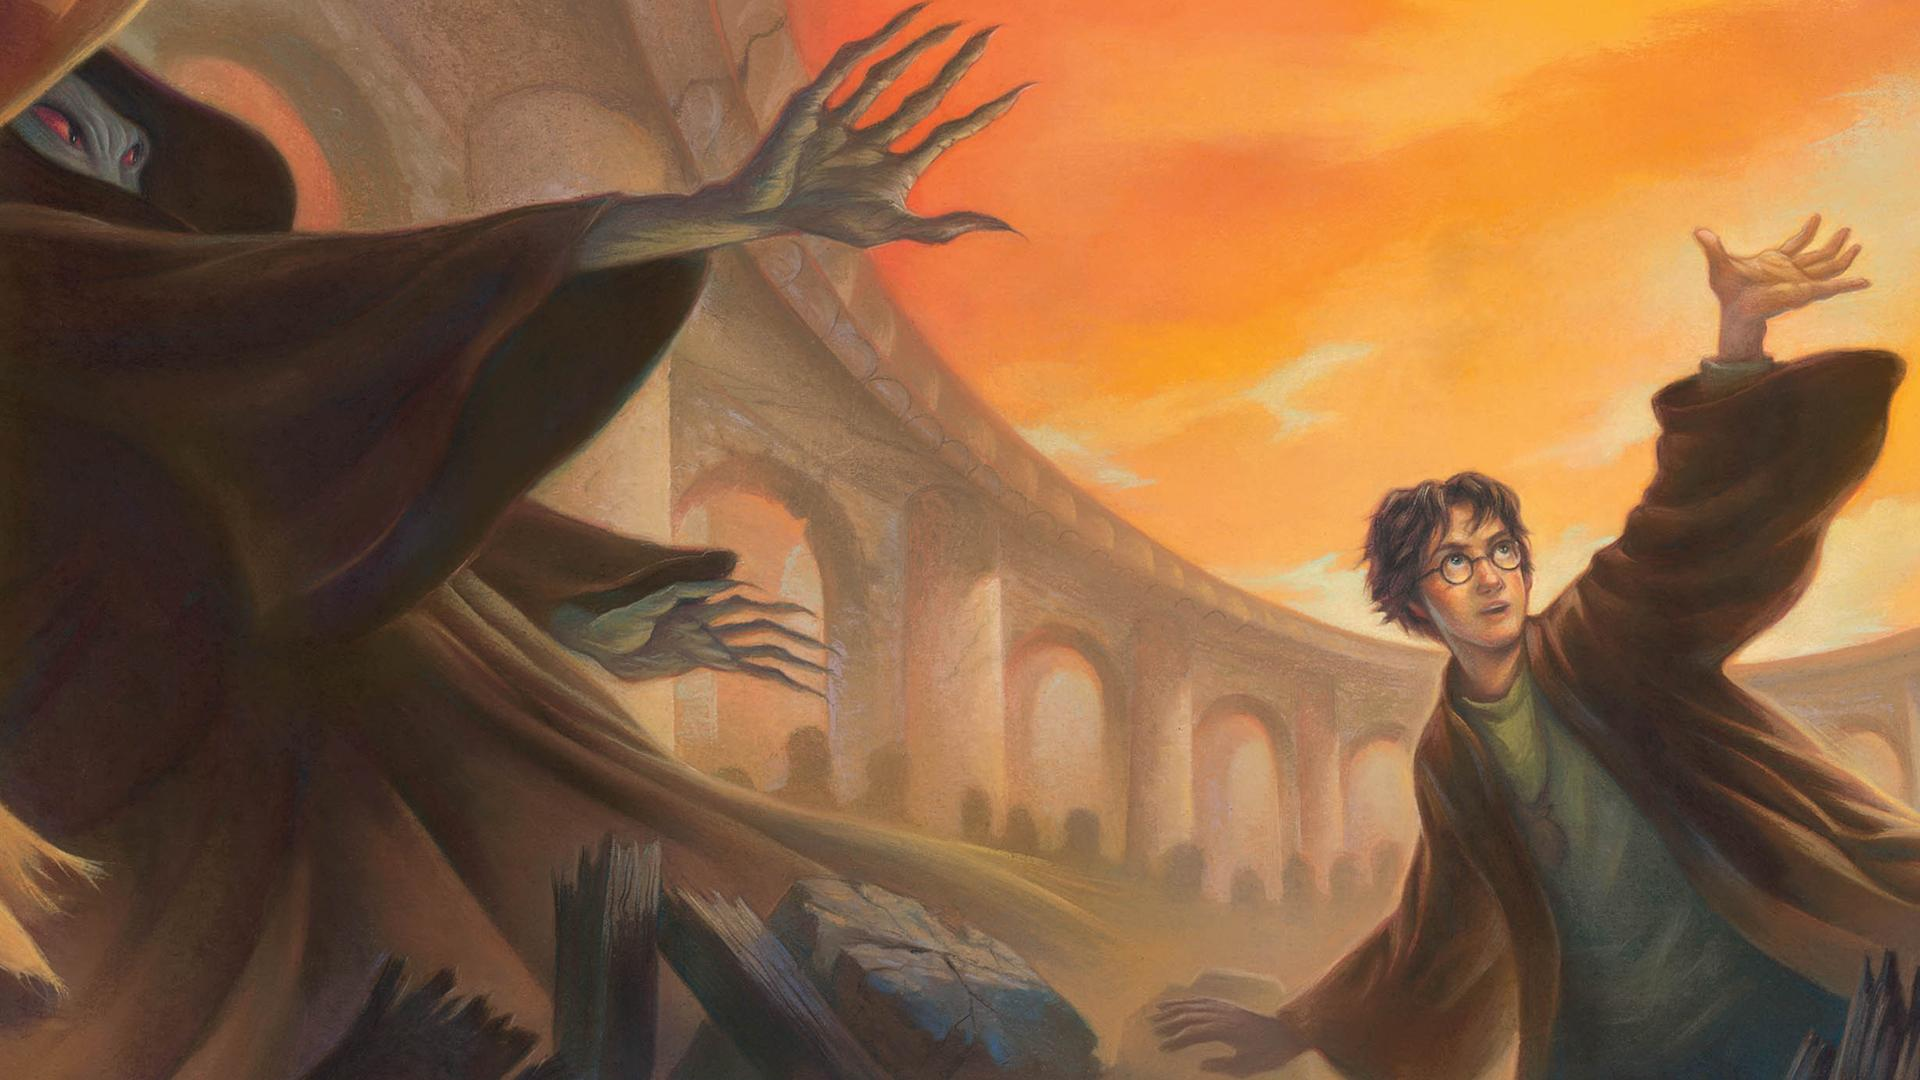 1920x1080 What is your favorite Harry Potter wallpaper? : harrypotter